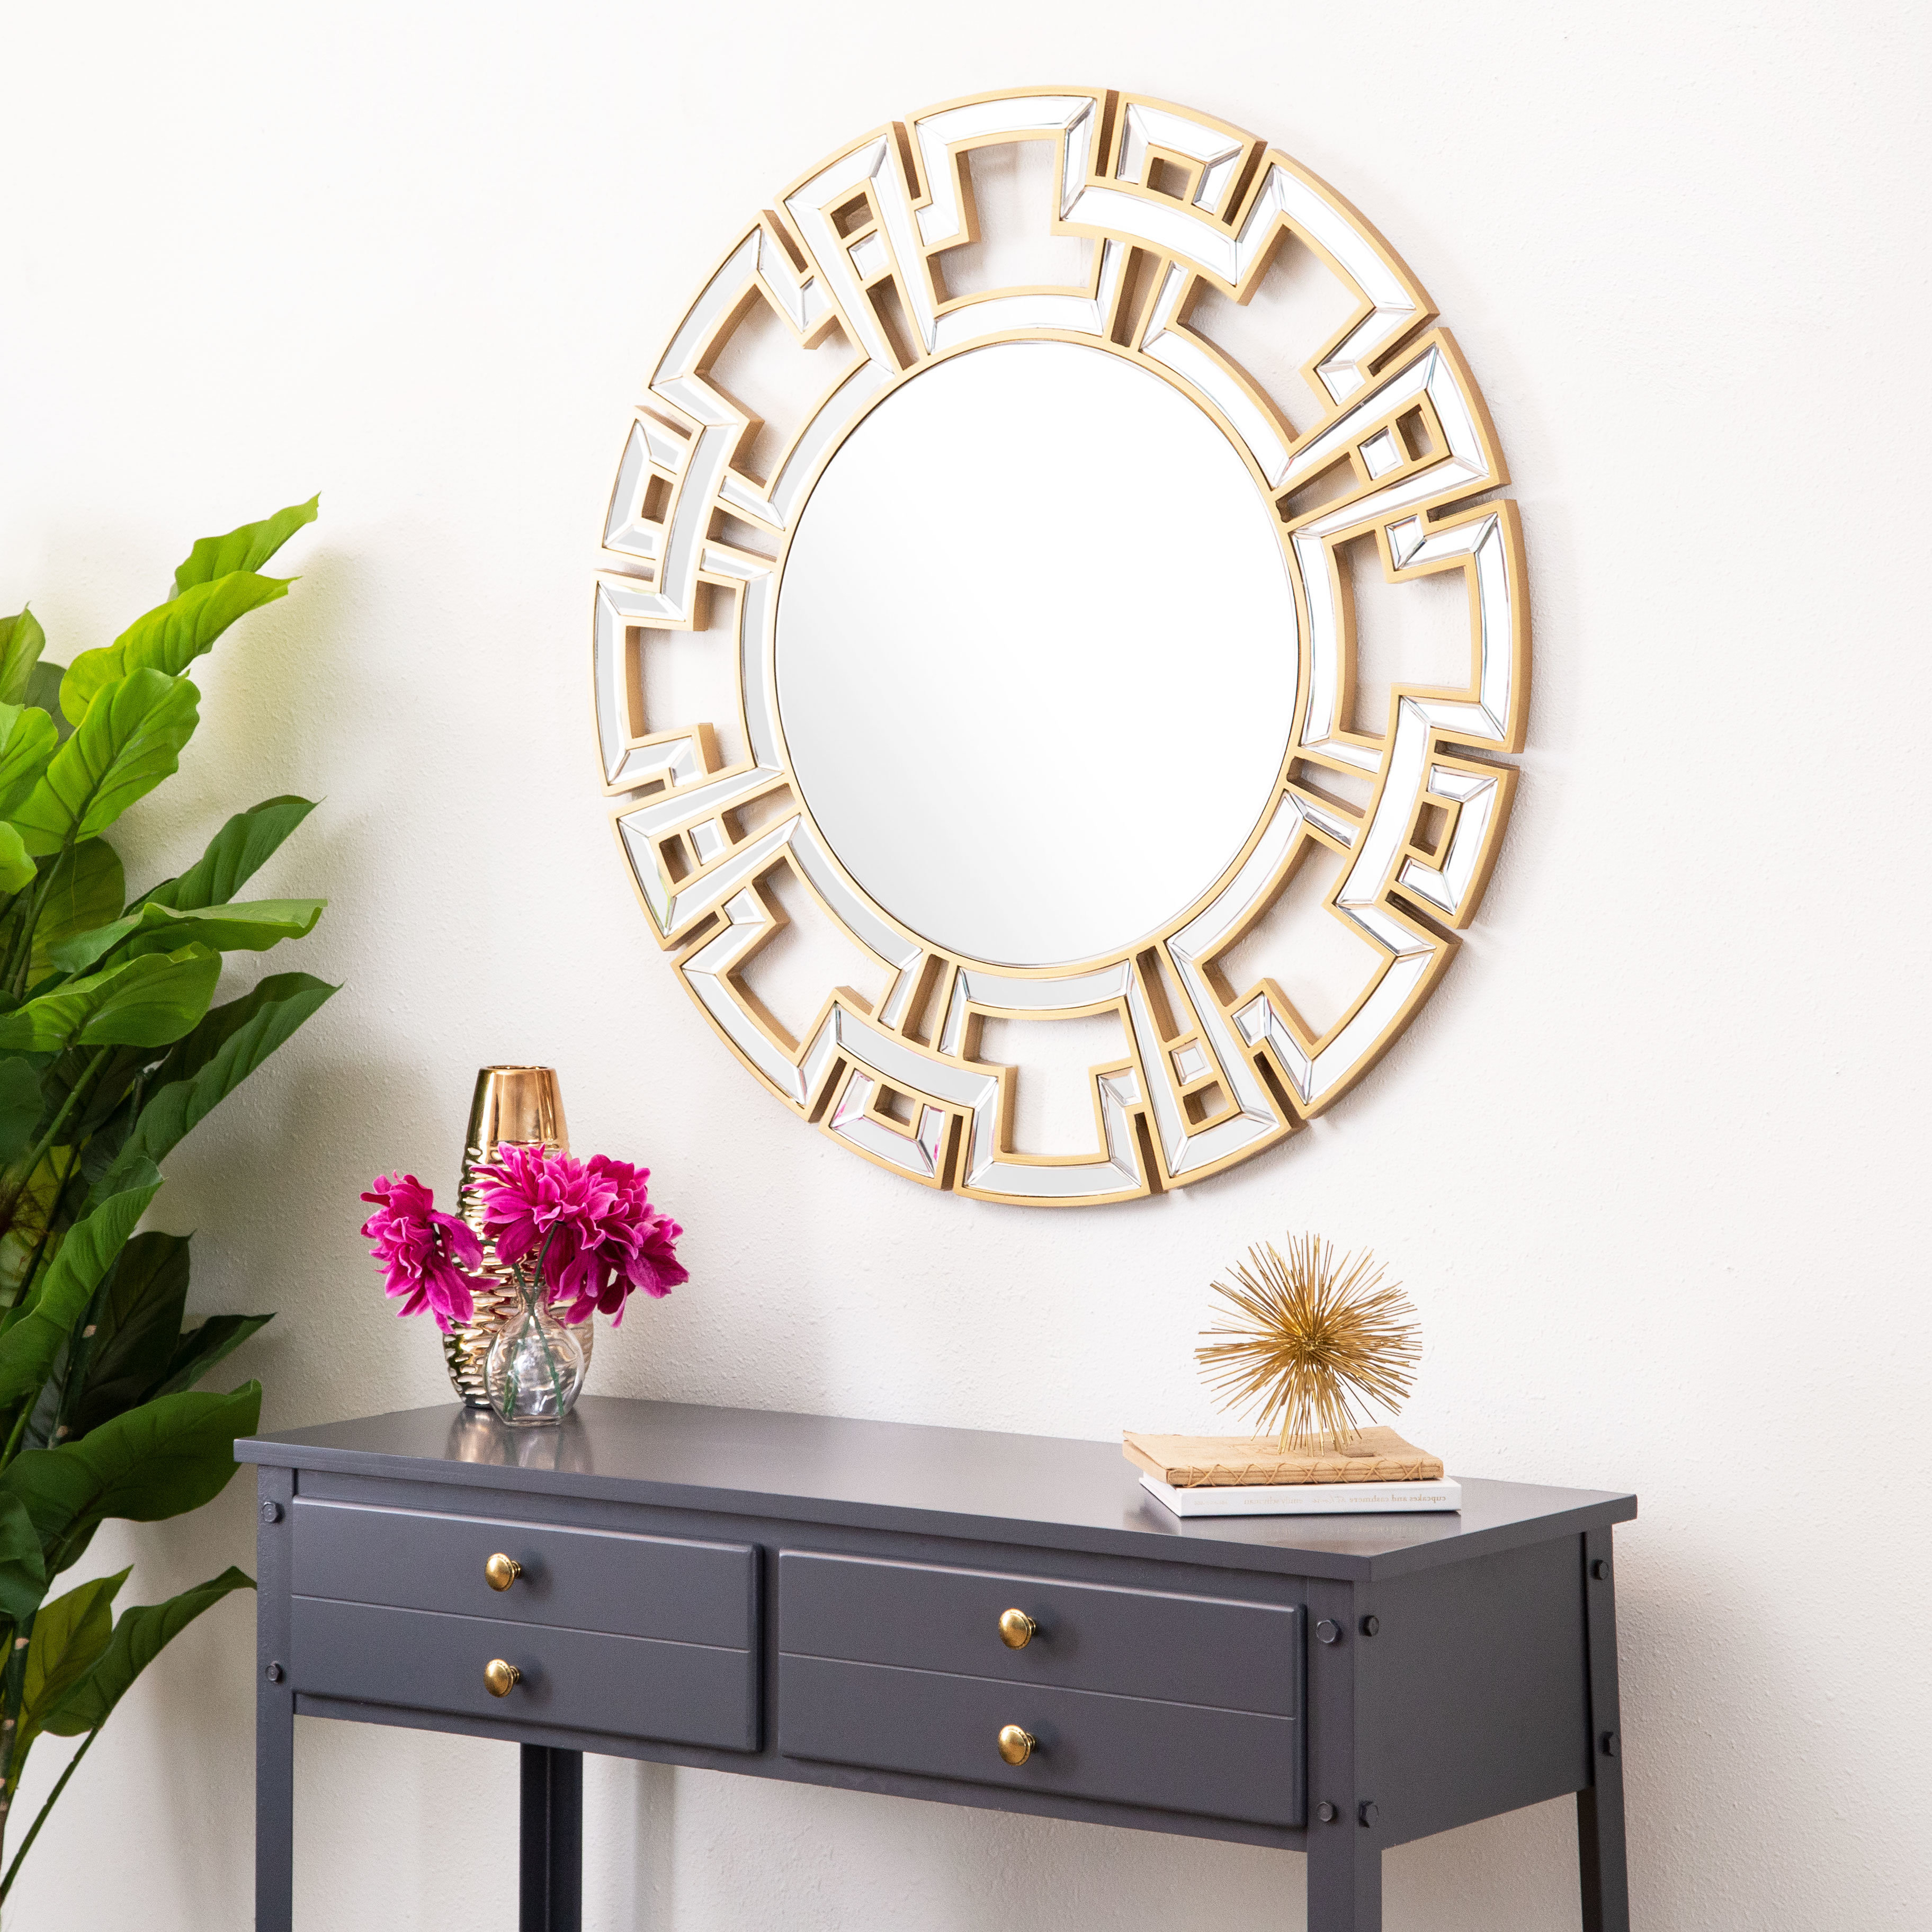 Tata Openwork Round Wall Mirror Intended For Latest Deniece Sunburst Round Wall Mirrors (View 17 of 20)